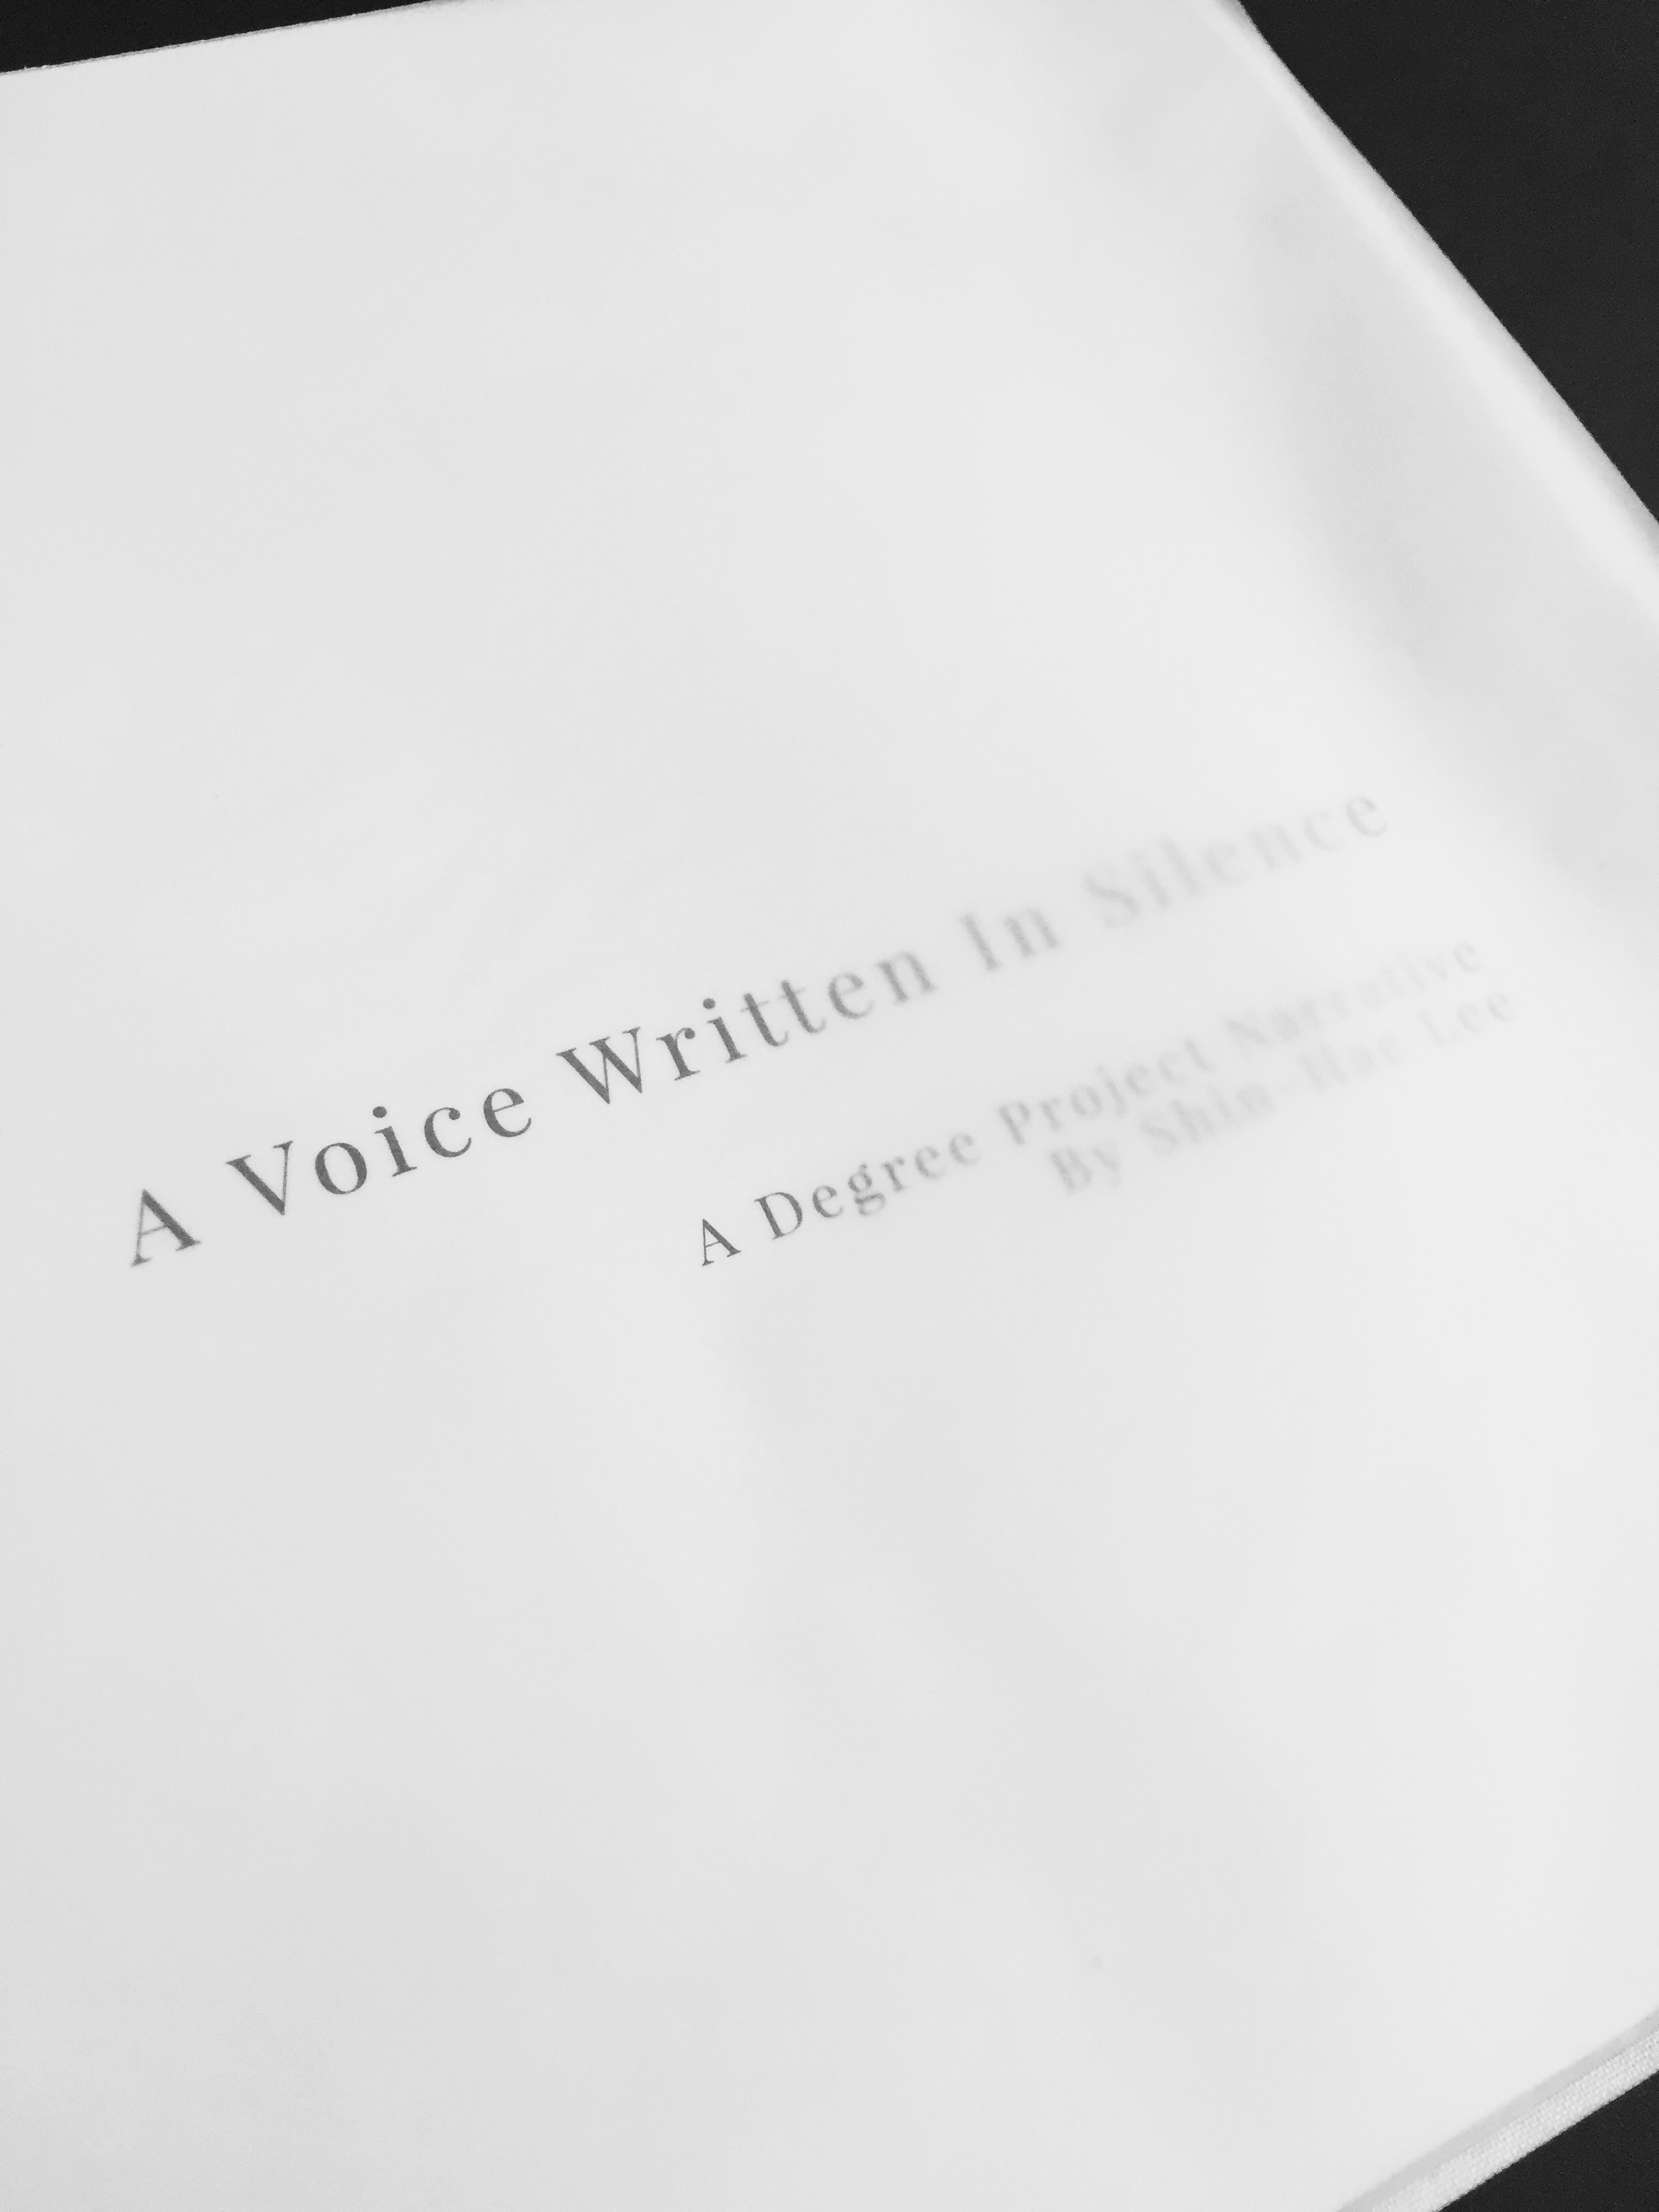 A VOICE written in silence - a degree project on deafness